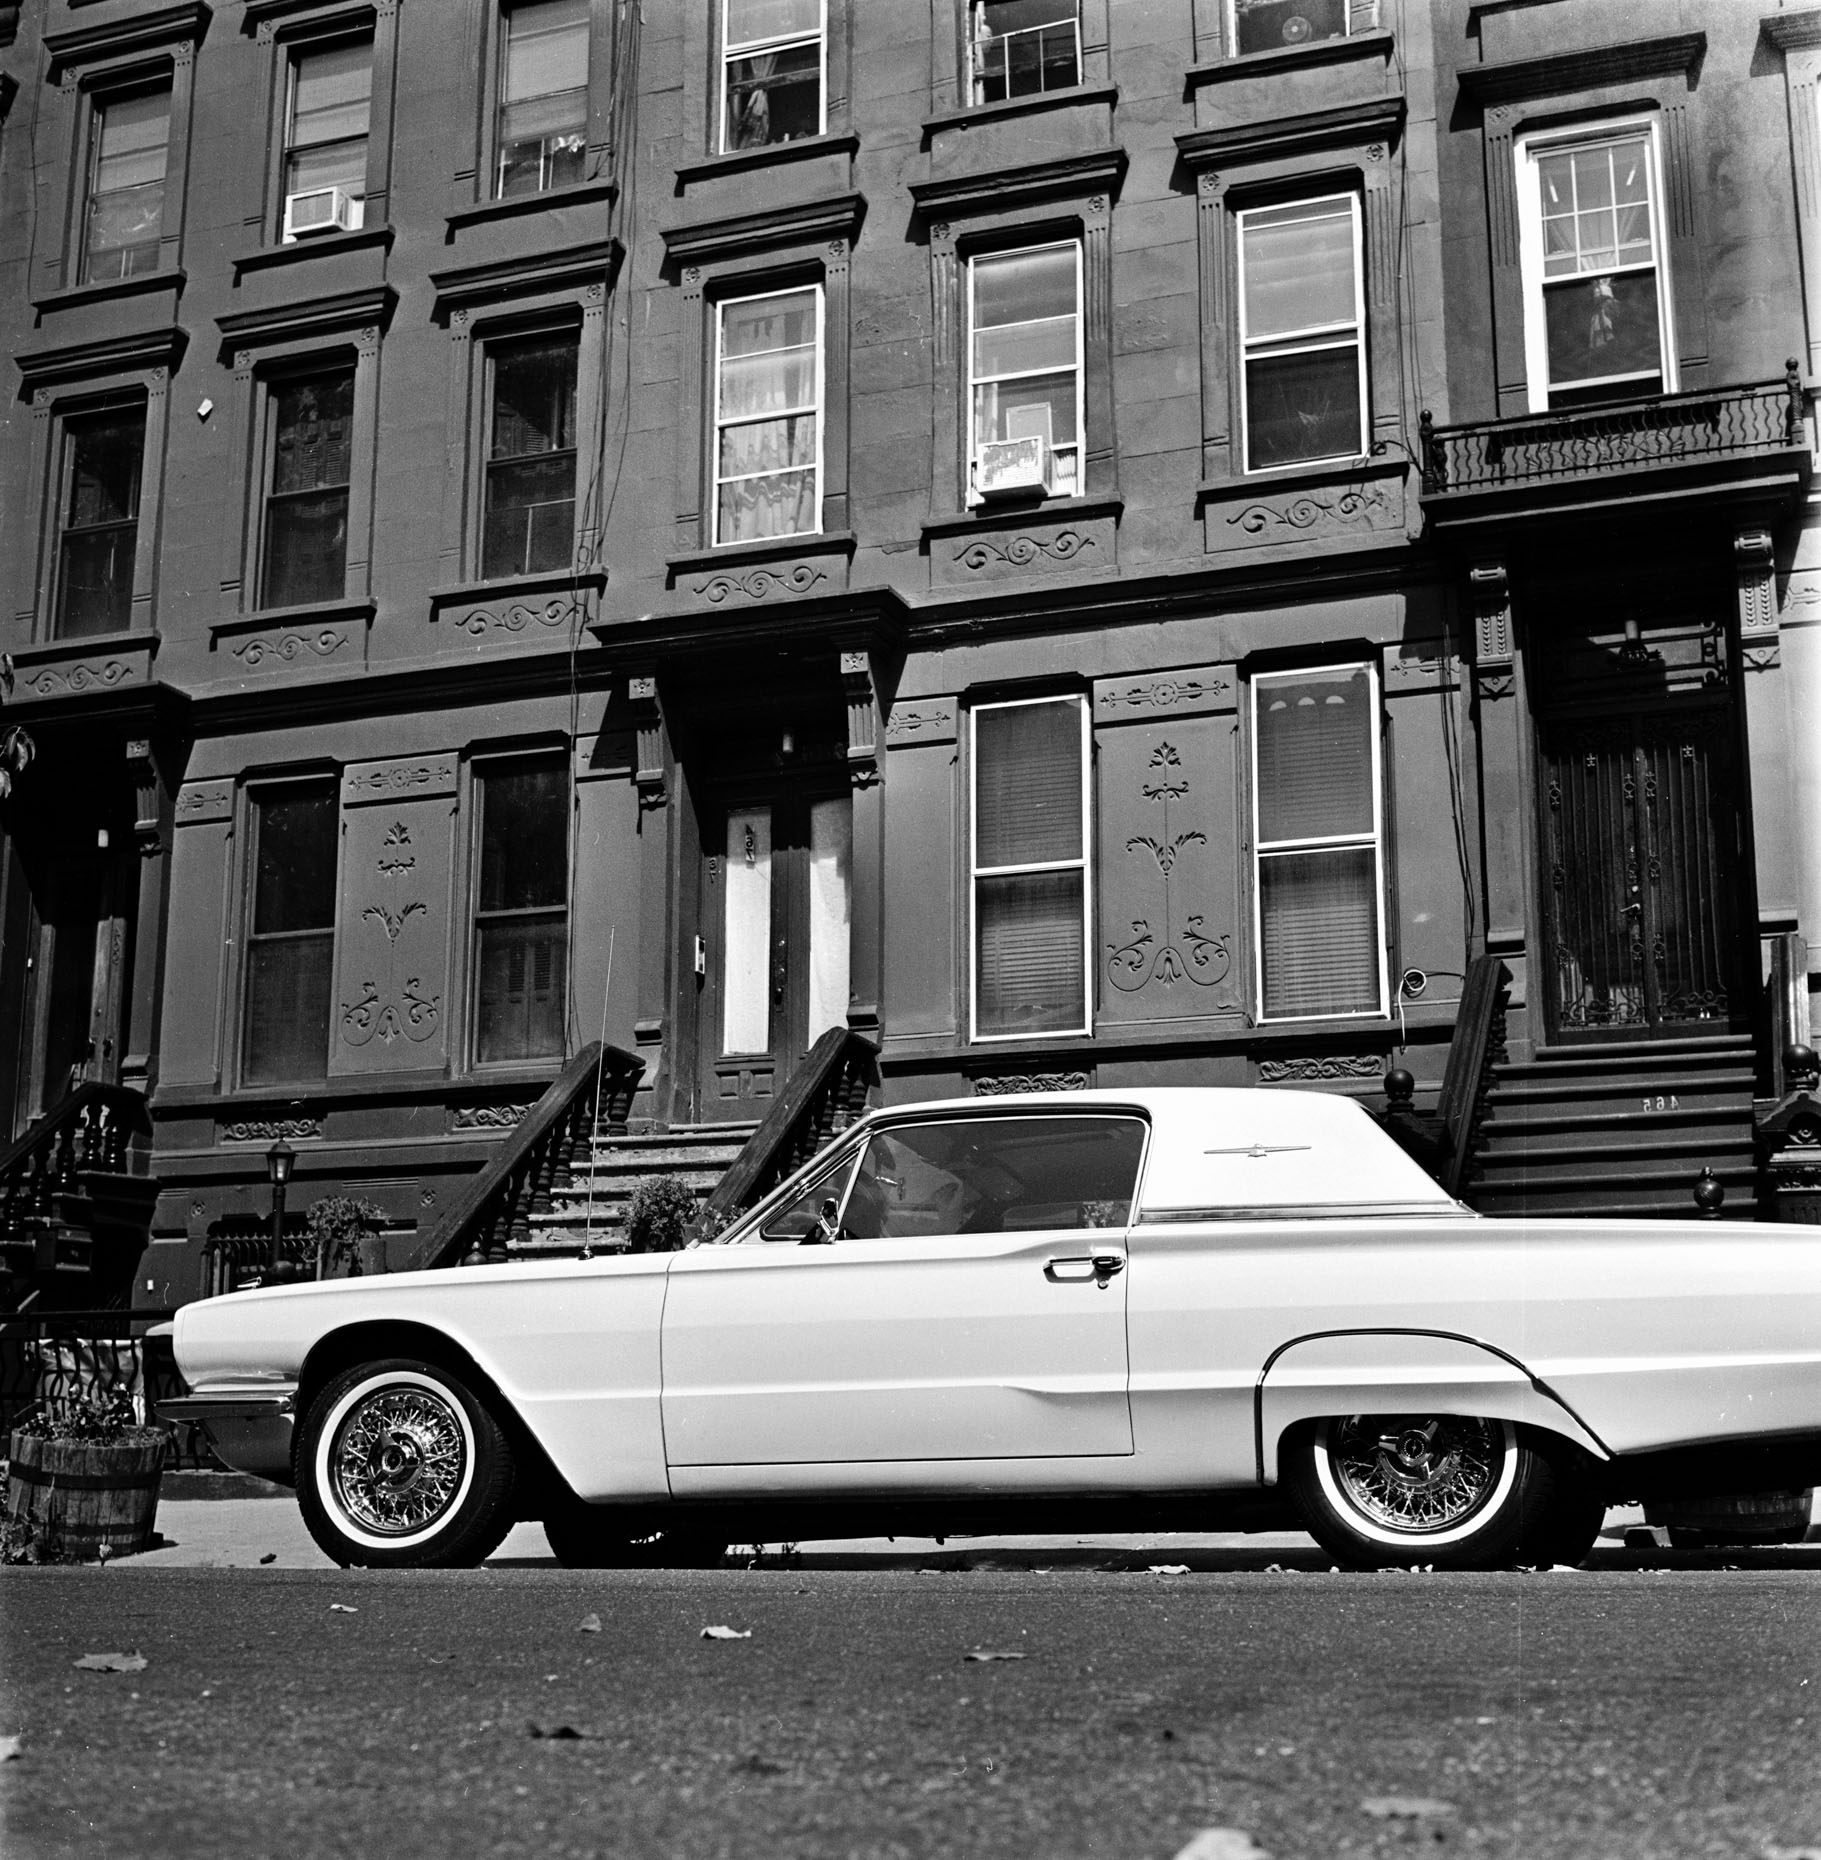 A white classic vintage Thunderbird parked on a street in Bedstuy, Brooklyn, New York